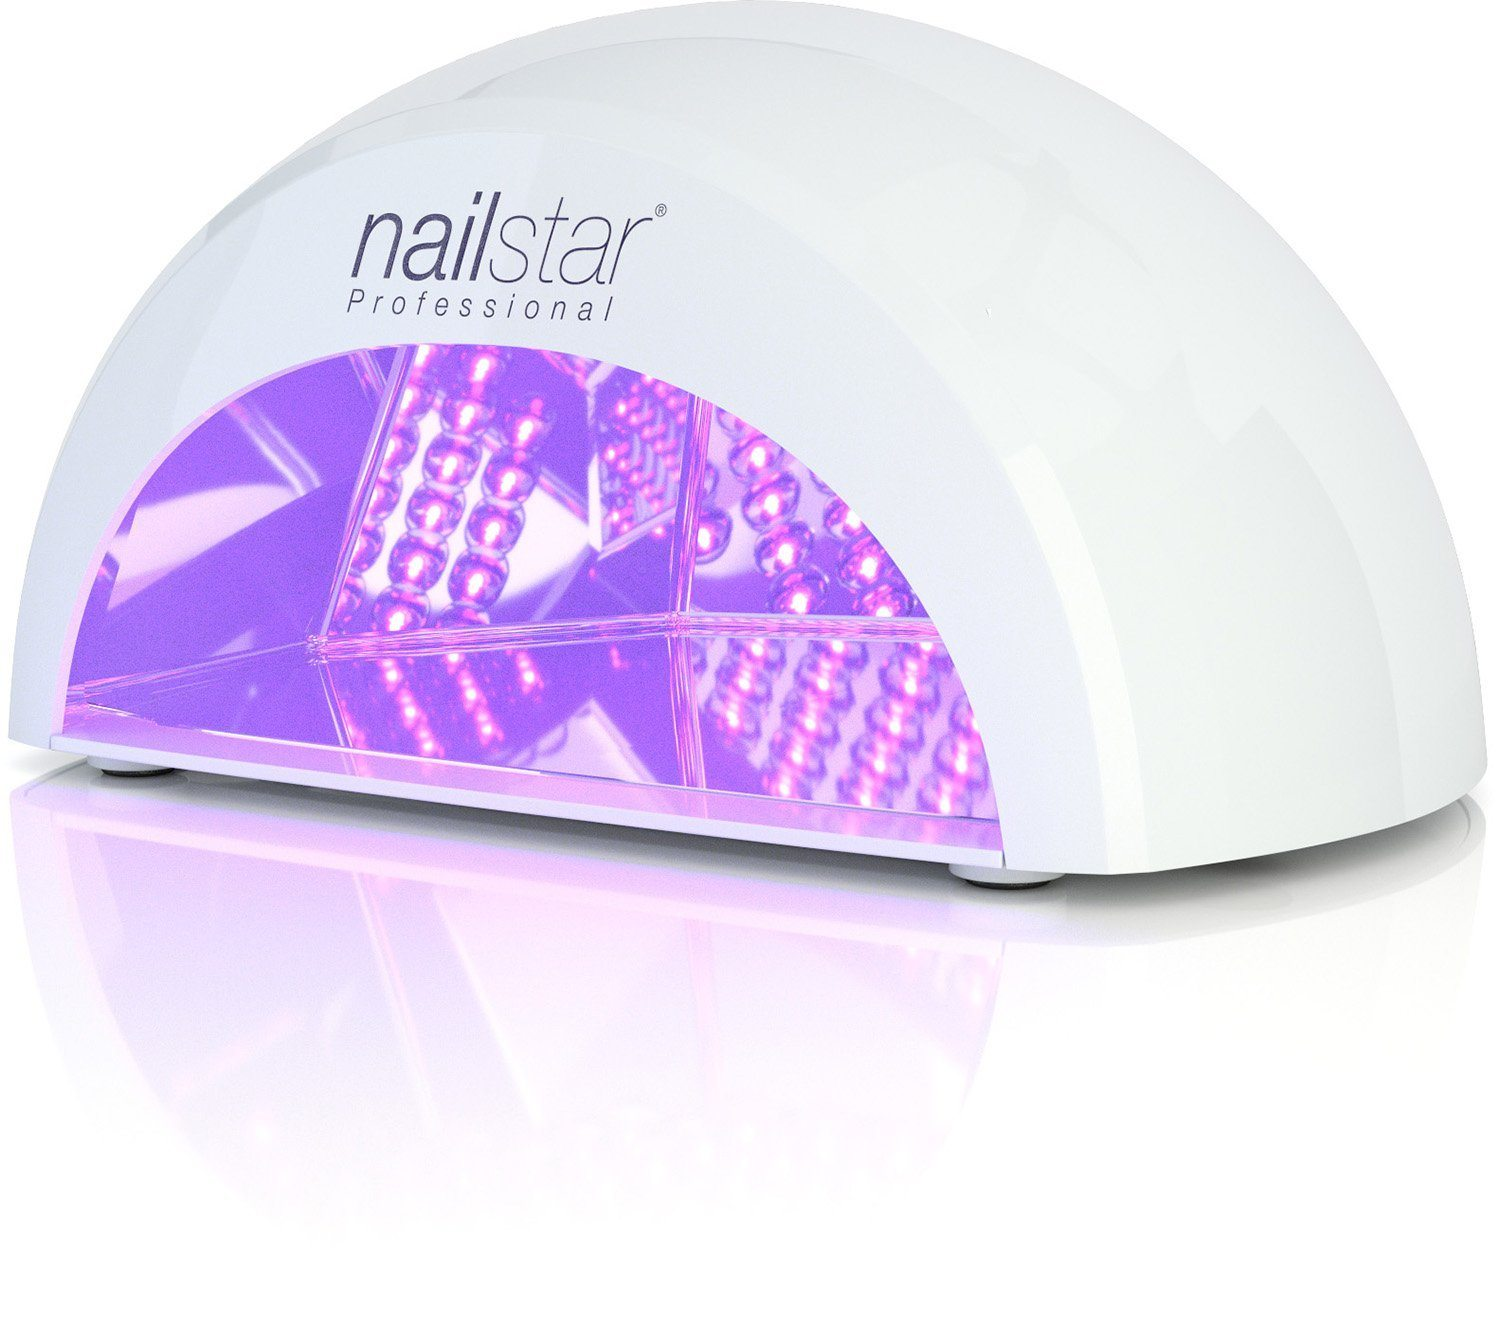 lampe LED Nailstar 12 W blanche